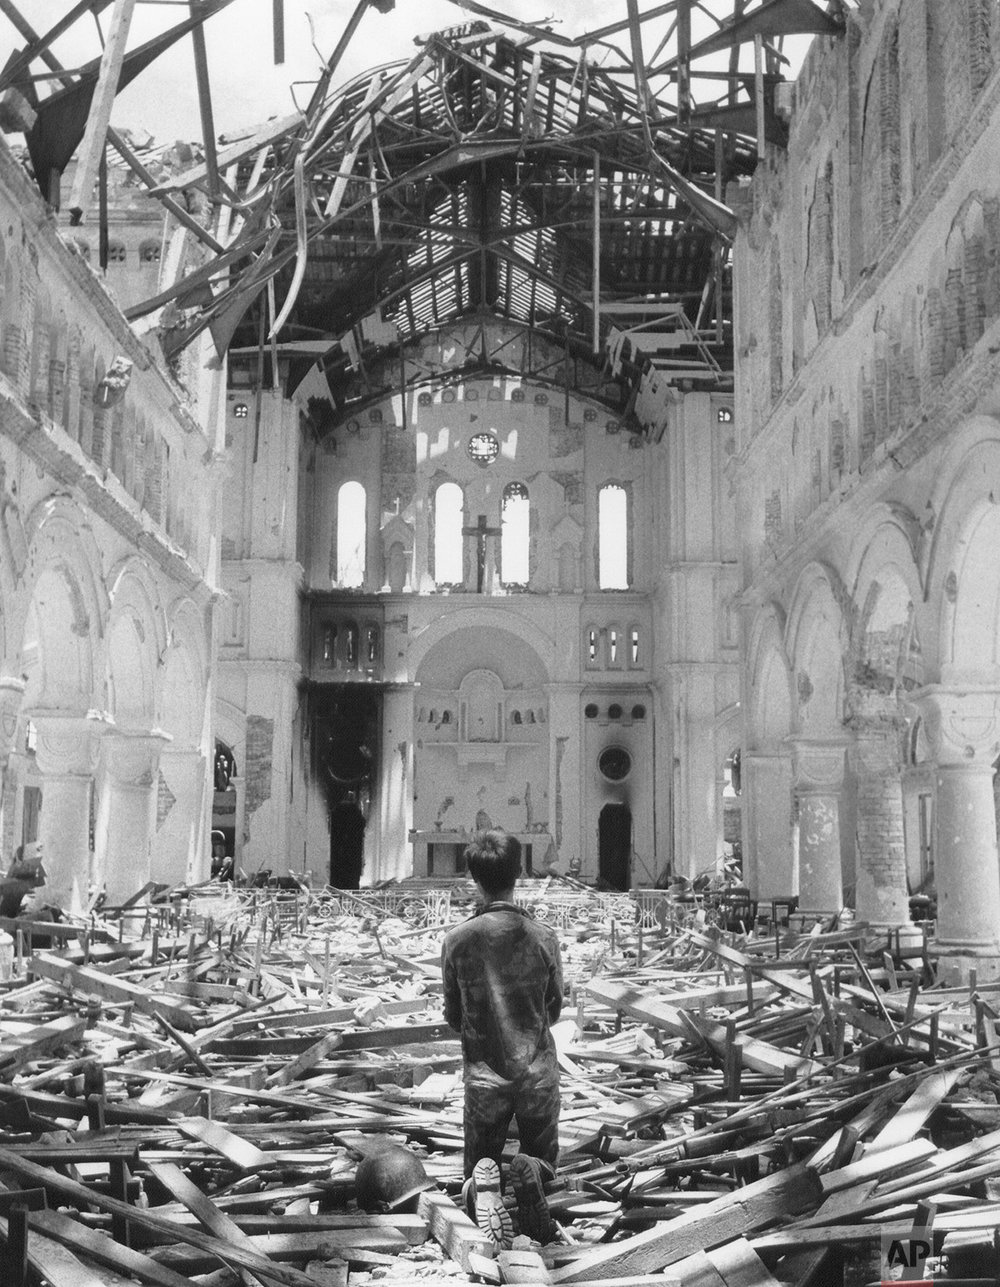 A South Vietnamese soldier kneels in prayer amid the ruins of the cathedral in La Vang, South Vietnam, on July 8, 1972 after government troops reentered the area near Quang Tri. The cathedral was damaged in fighting when the city fell to the North Vietnamese on May 1. (AP Photo/Nick Ut)